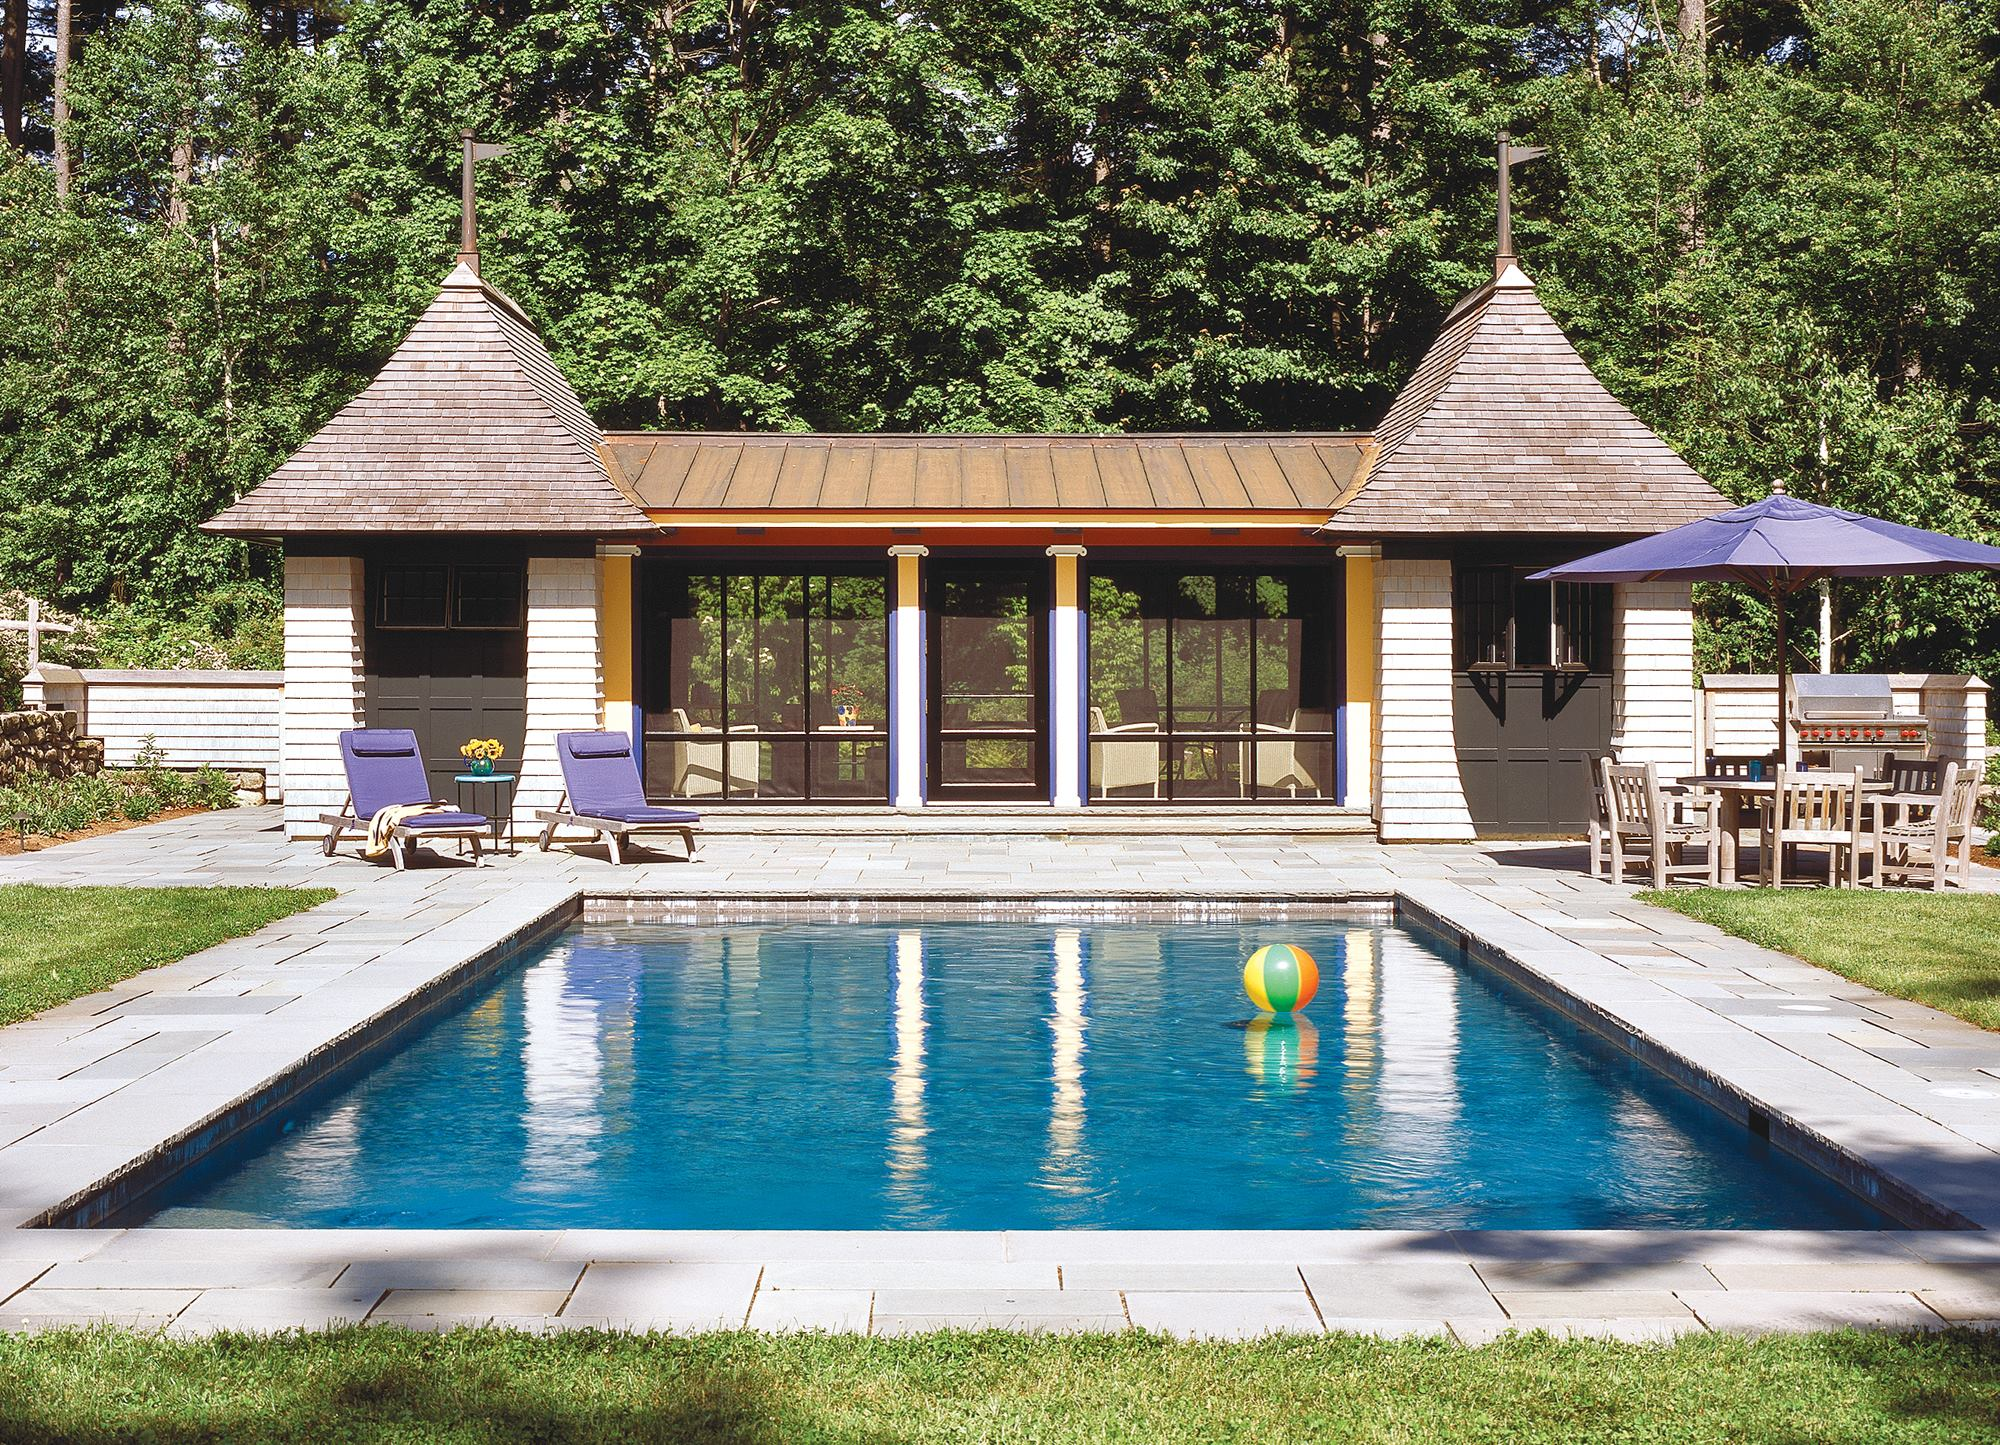 Pool houses custom home magazine design vacation for Pool plans online